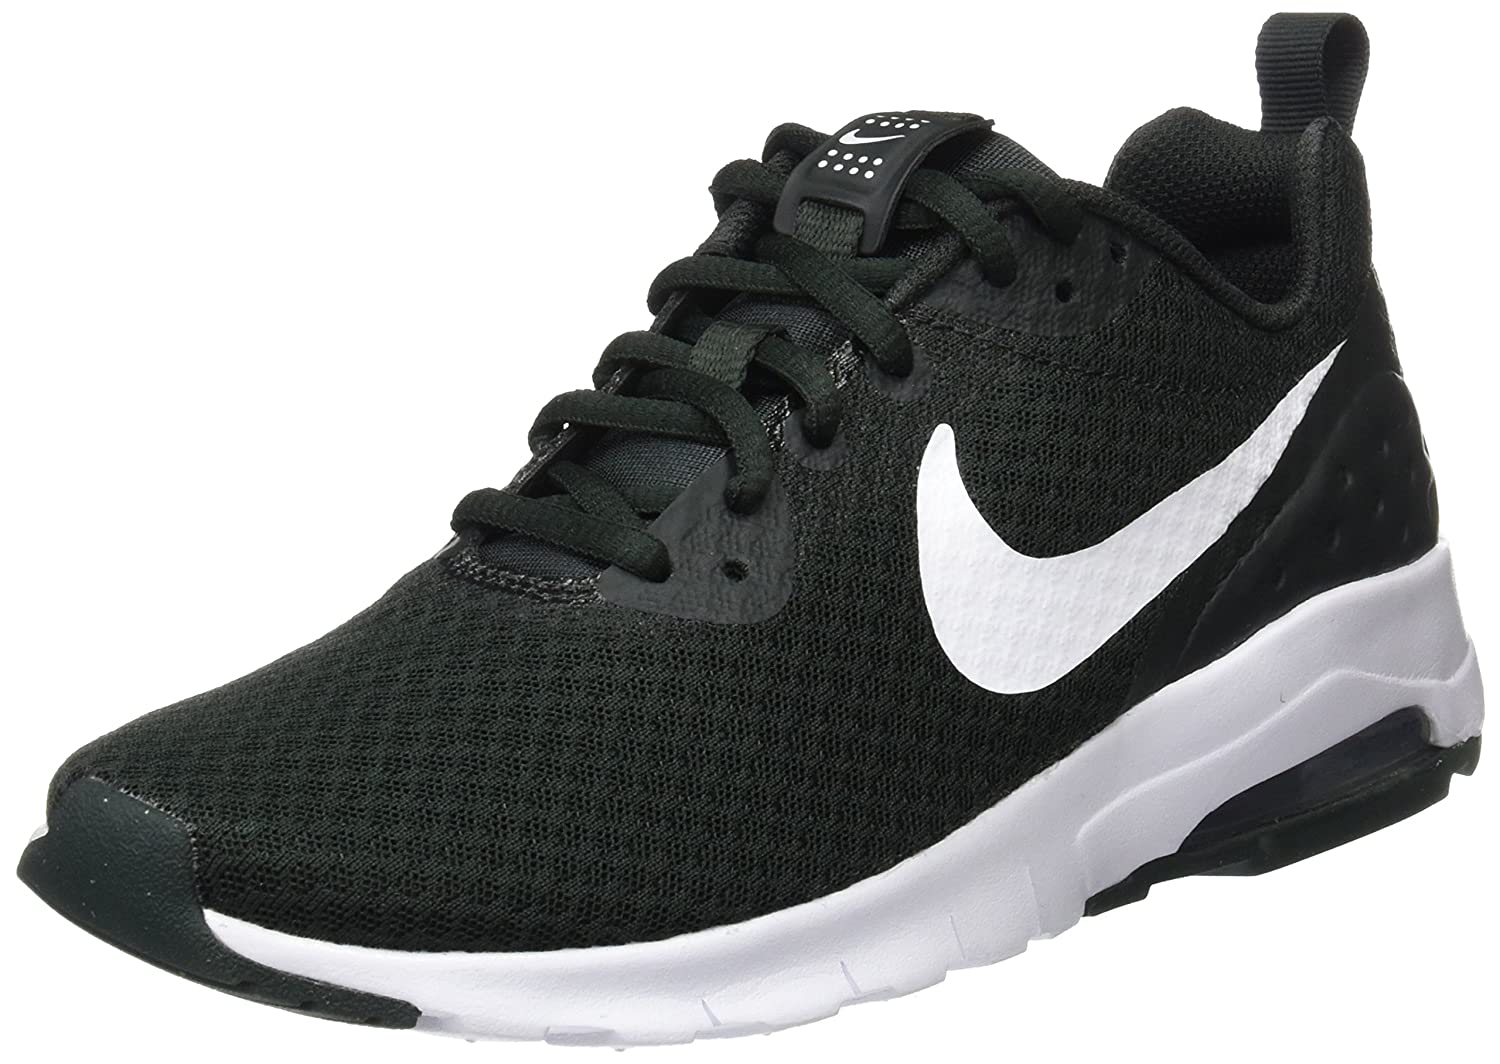 NIKE Women's Air Max Motion Lw Running Shoe B06X3RP2PM 5.5 B(M) US|Outdoor Green/White